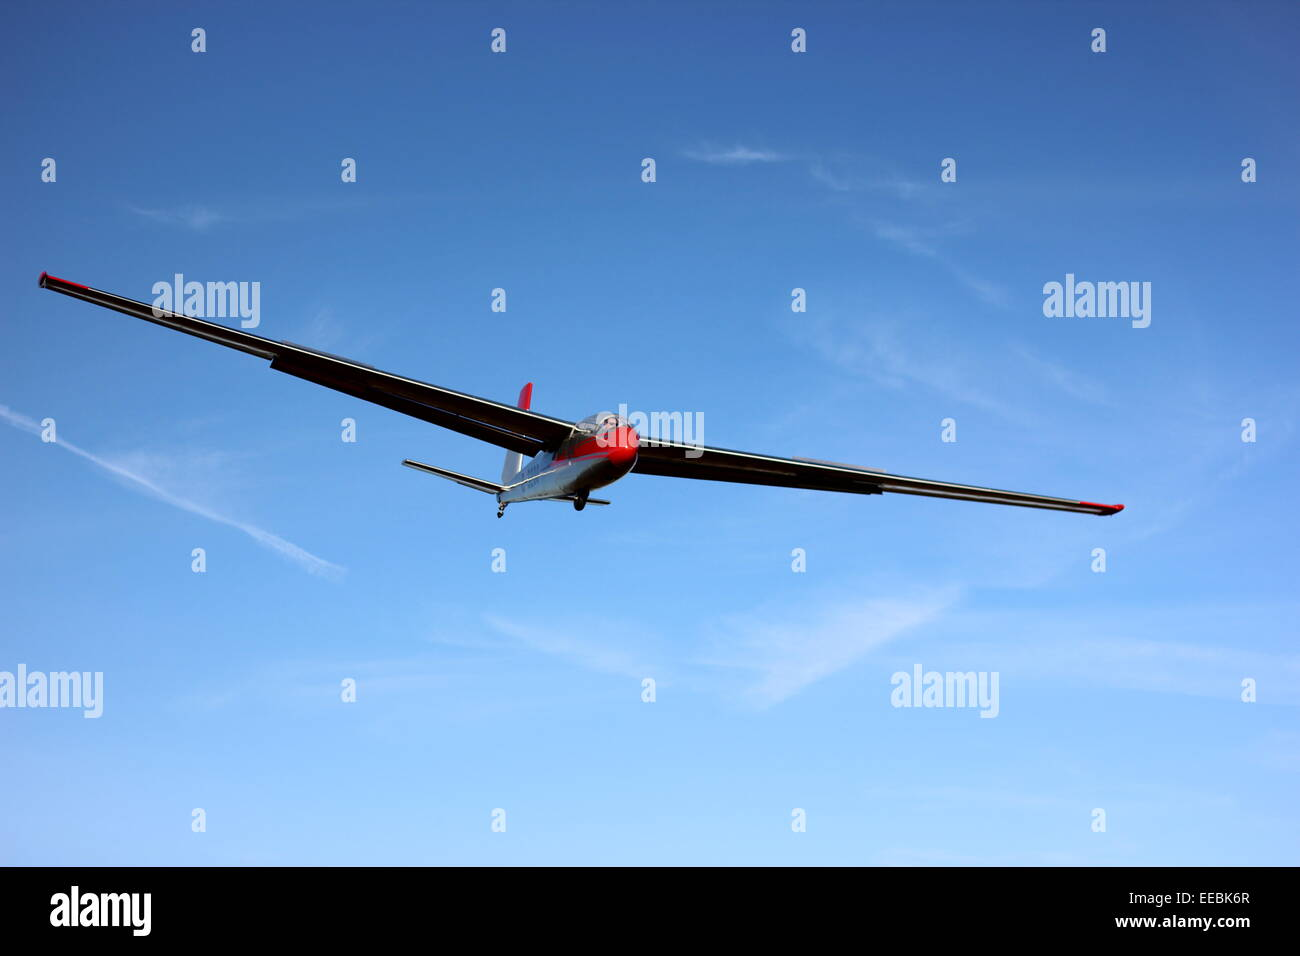 Final approach of a glider - Stock Image